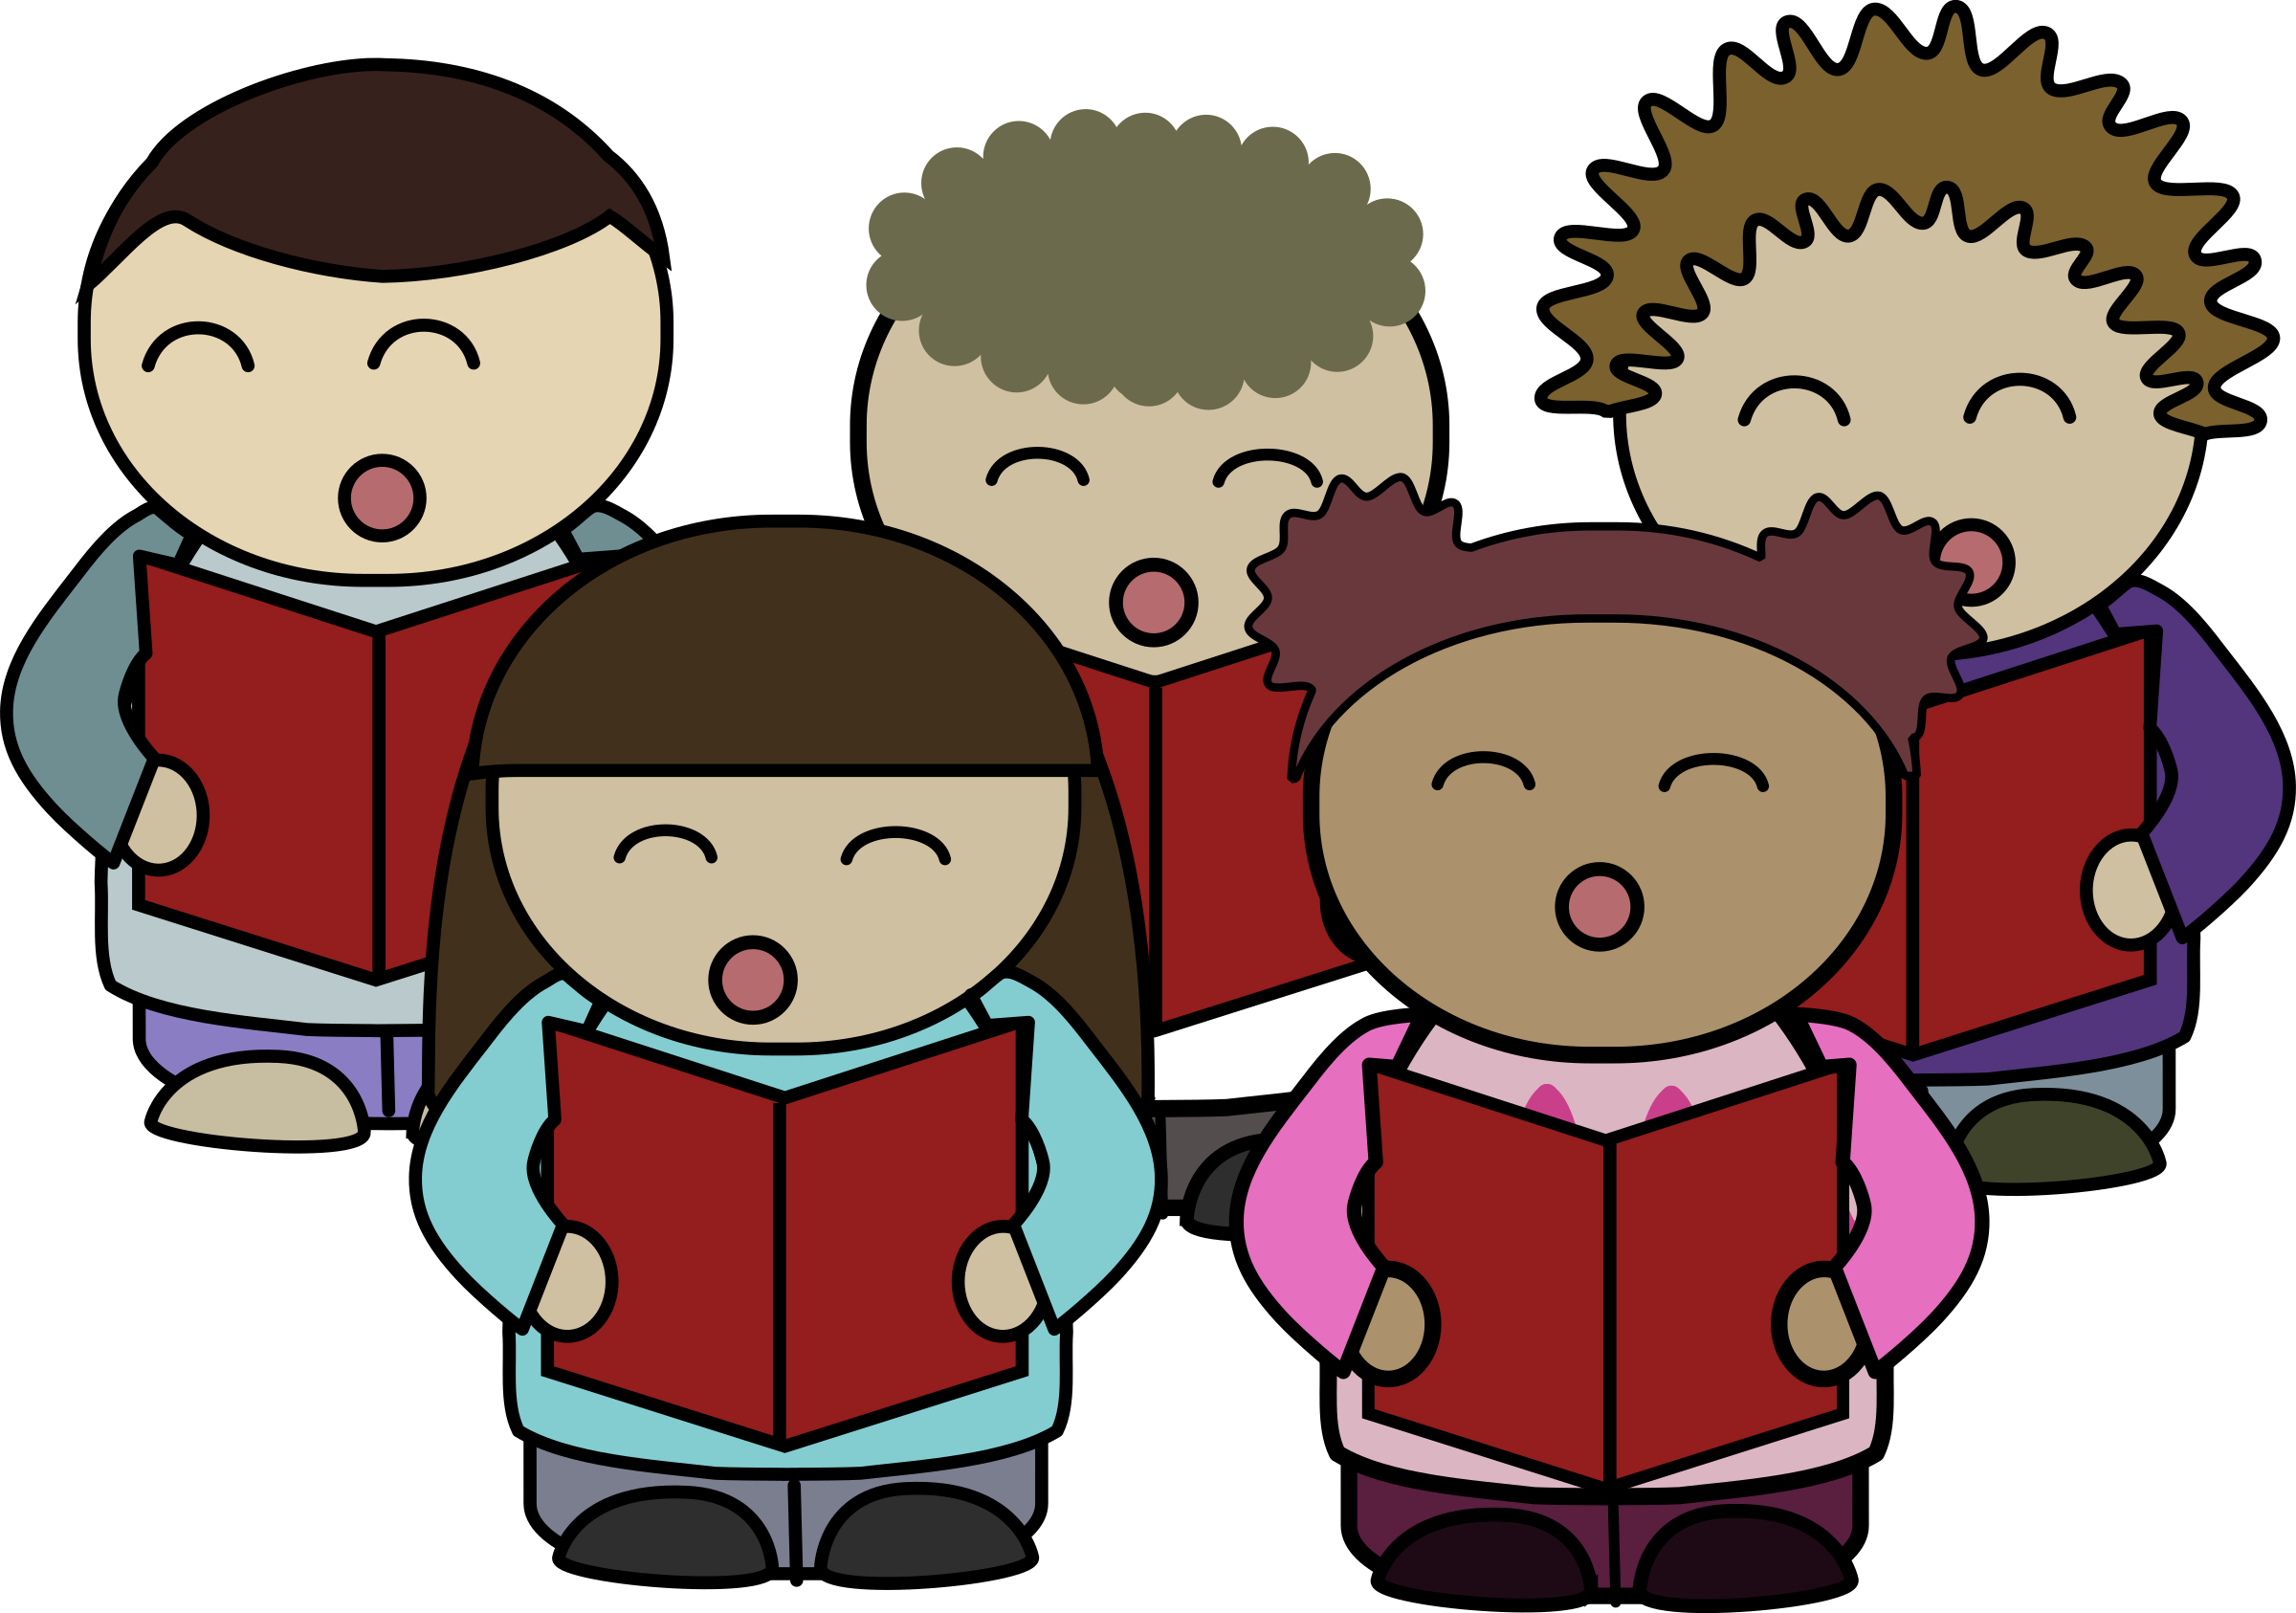 Singer clipart kid public speaking Choir choir Art singing Clip